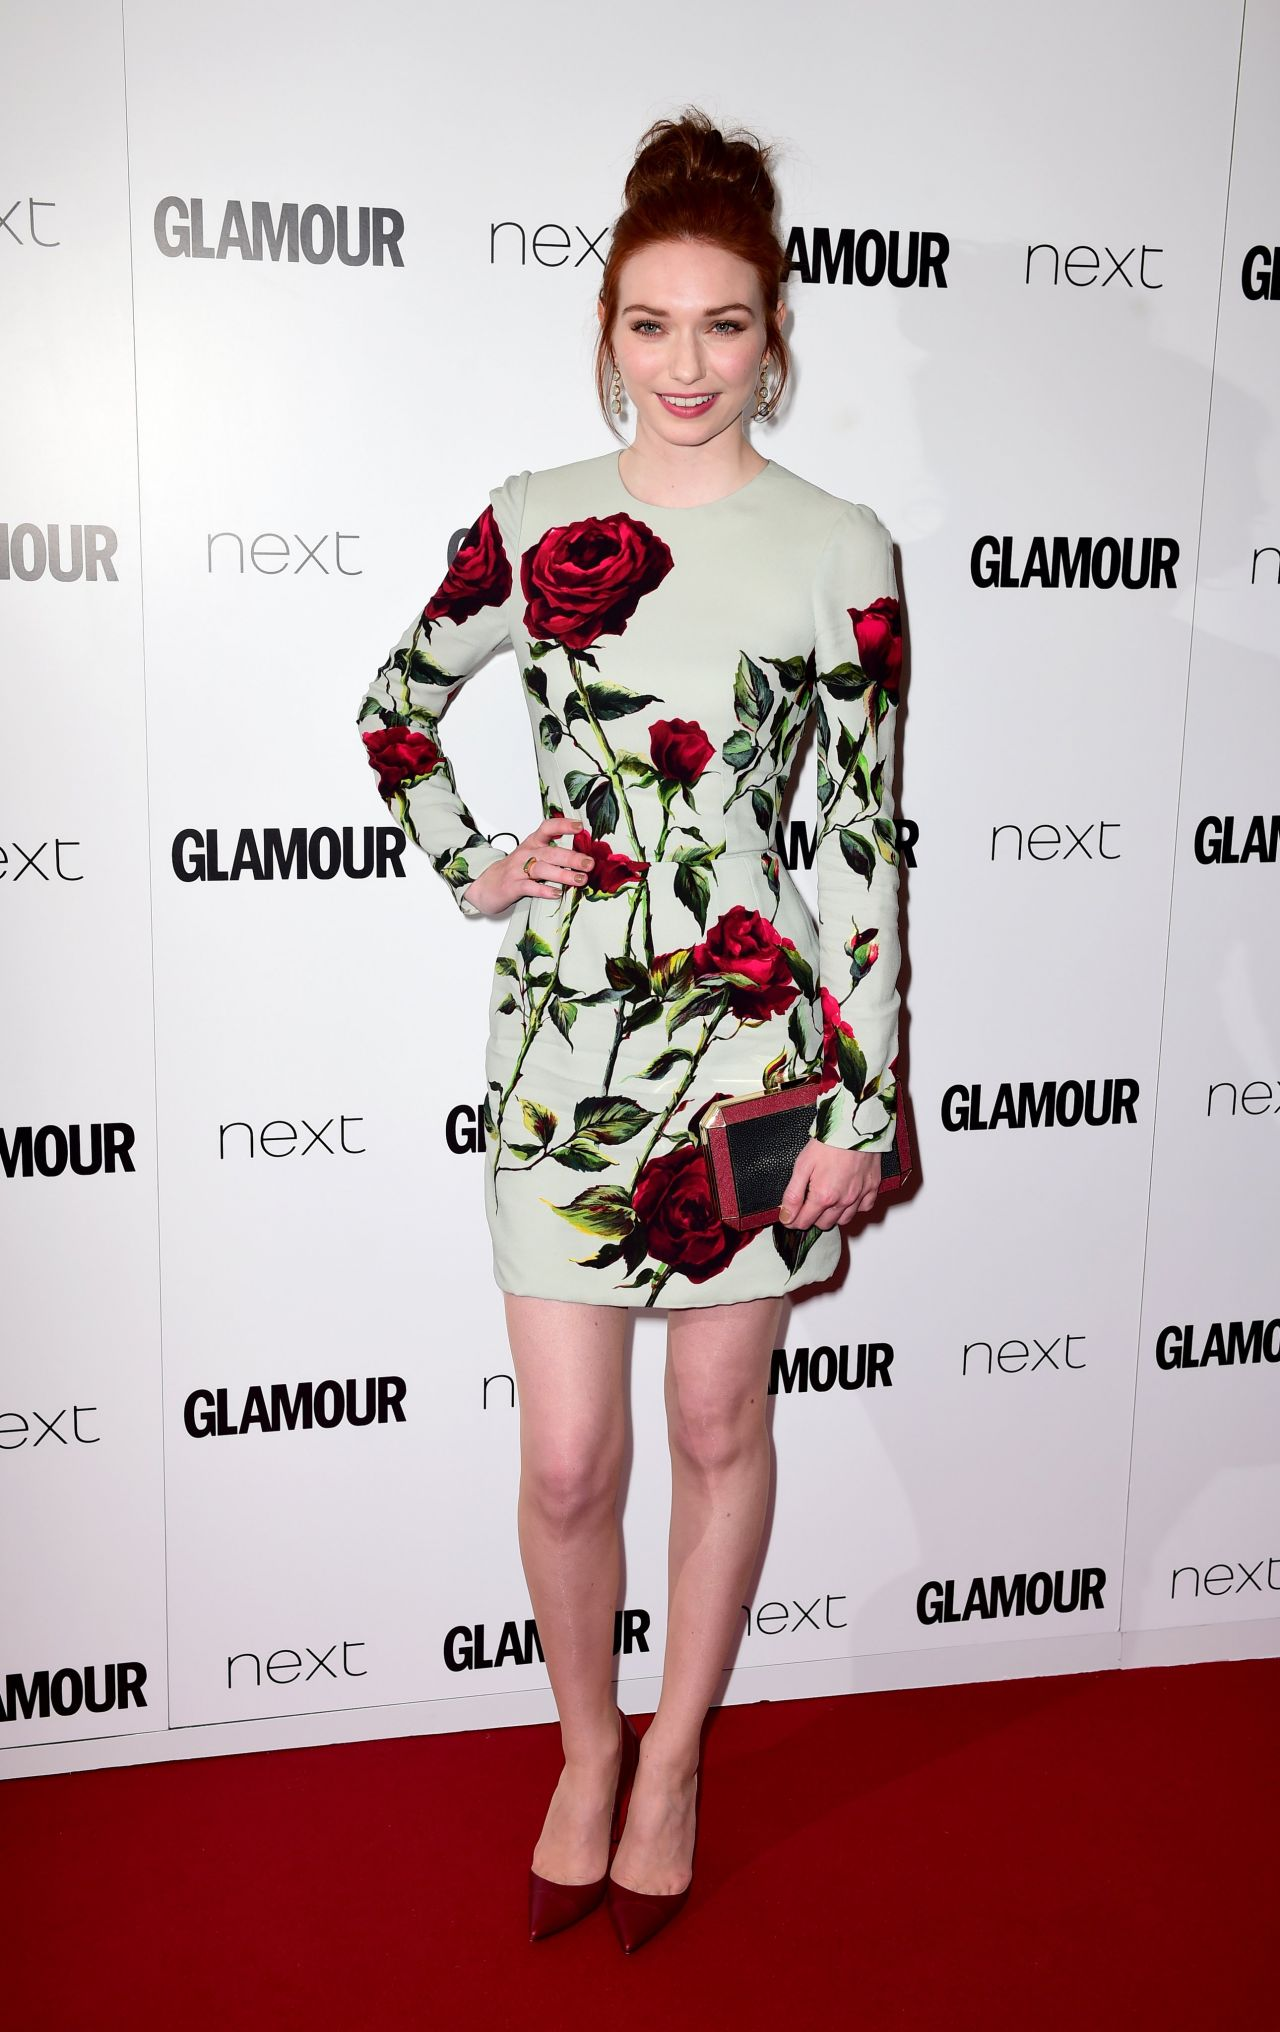 eleanor-tomlinson-2015-glamour-women-of-the-year-awards-in-london_9